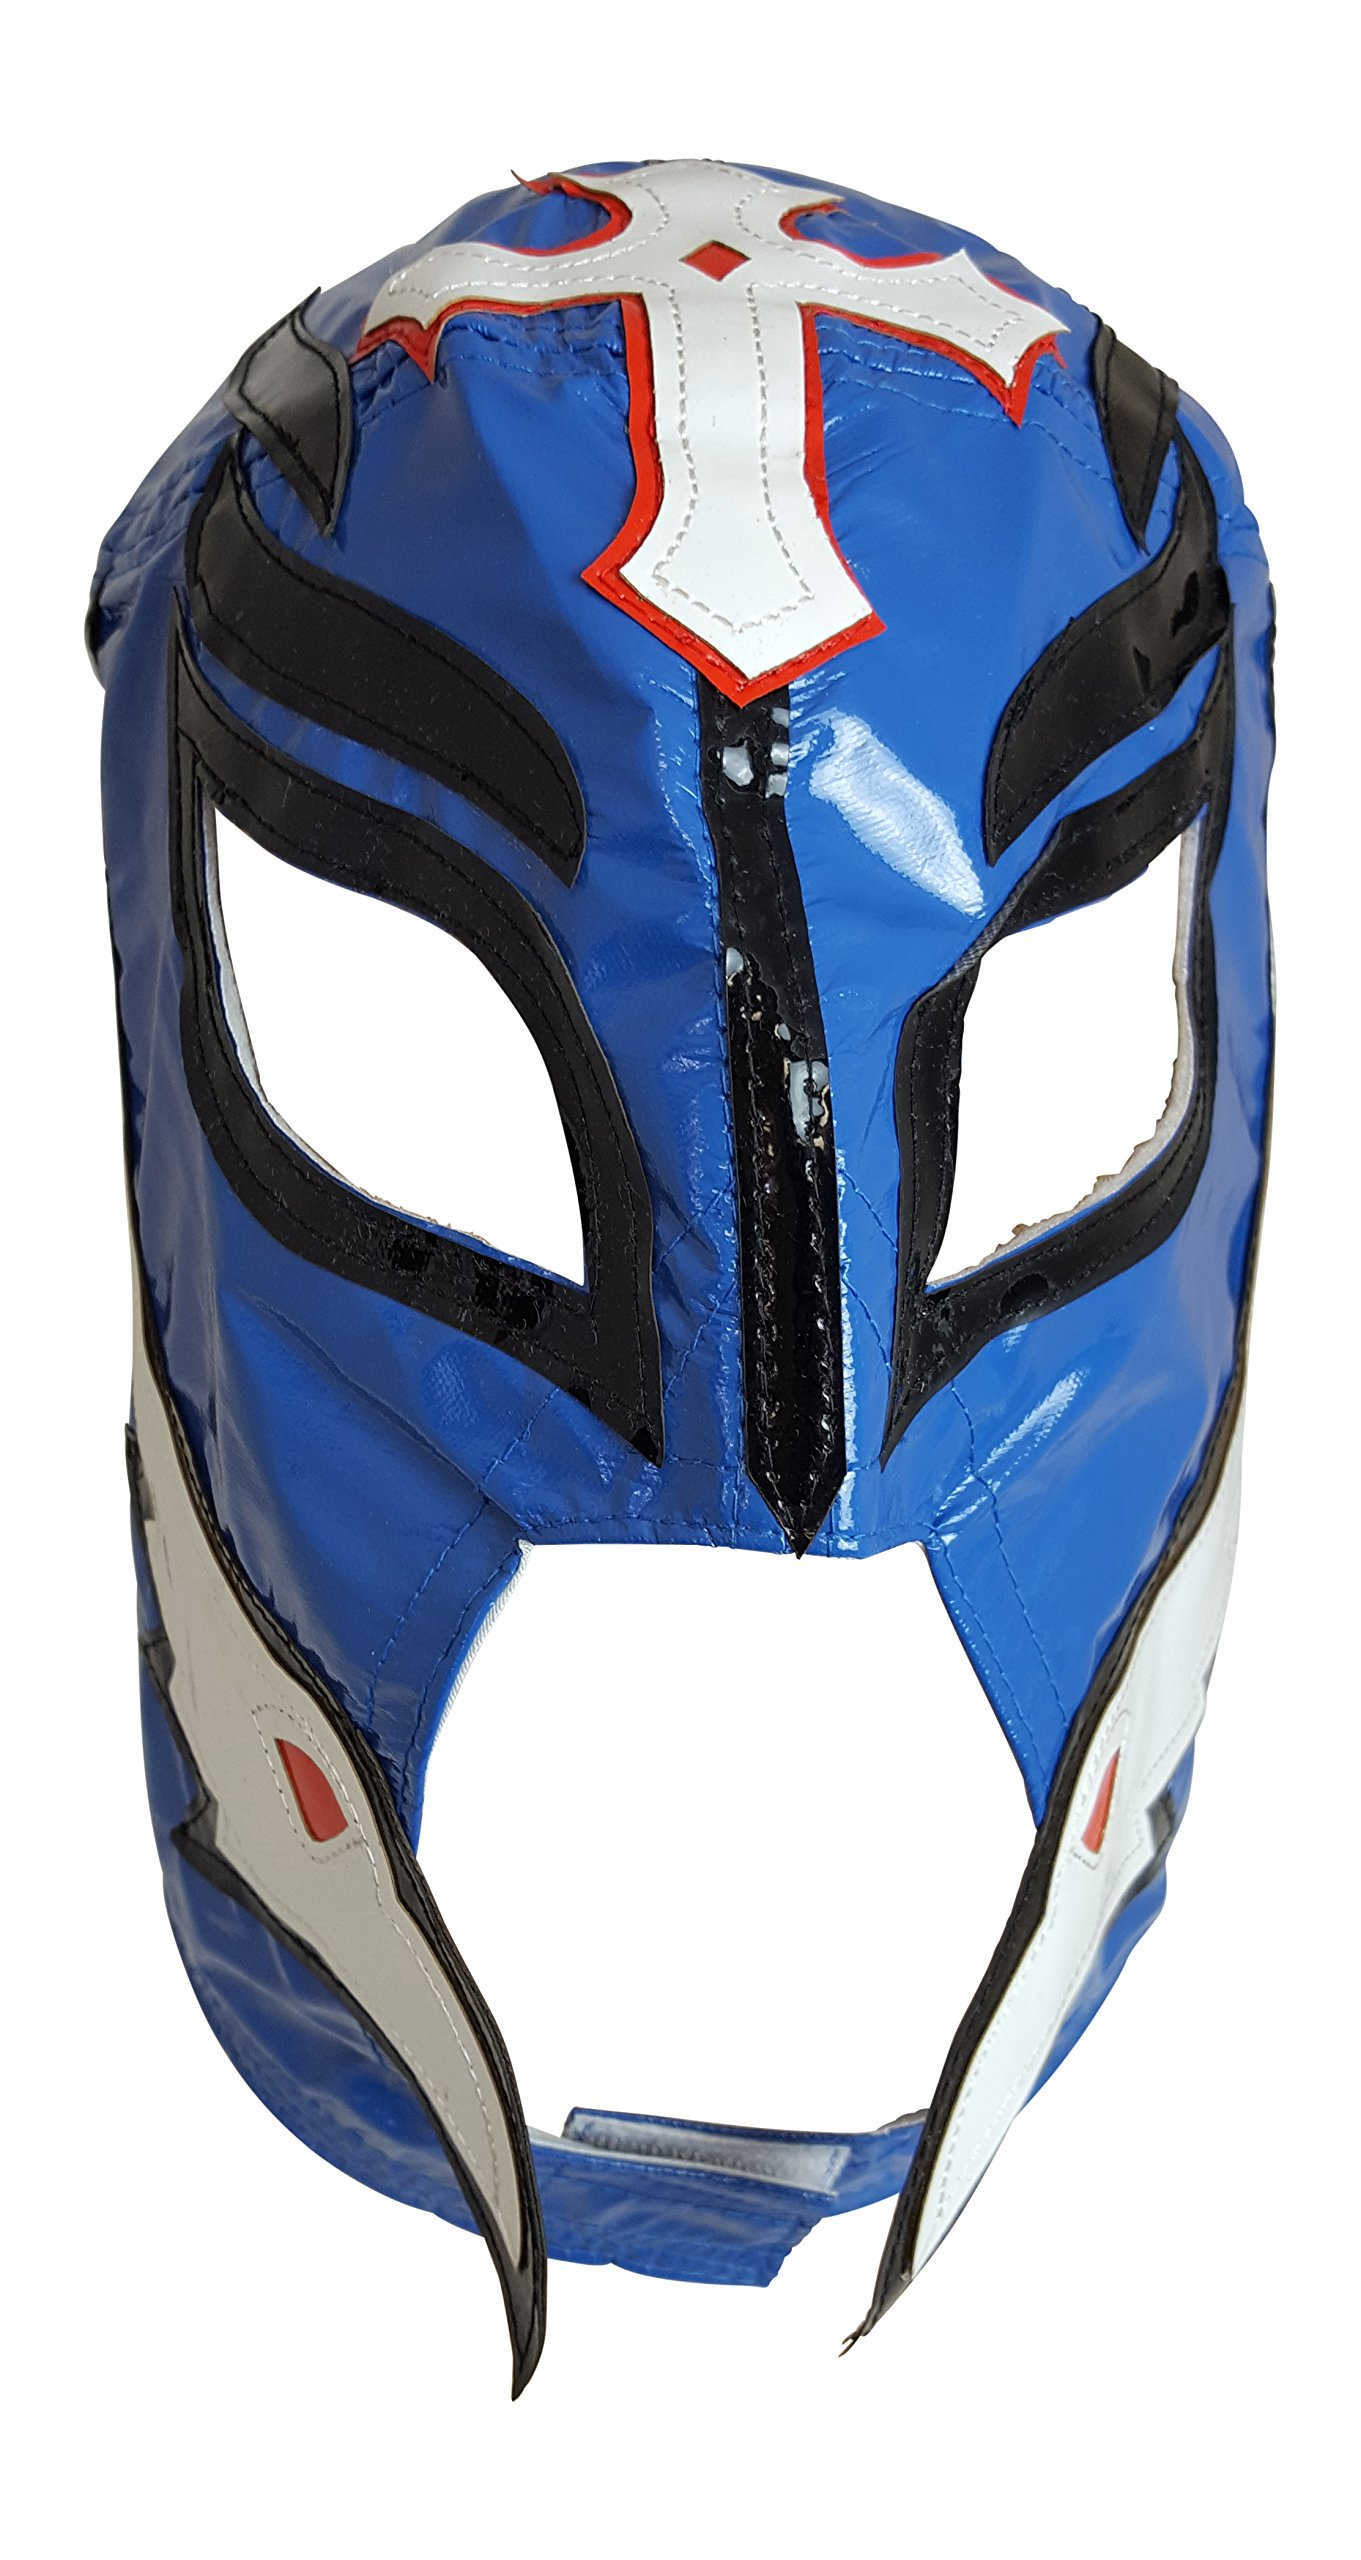 Lucha Libre Mask Adult Size Black Blue Red Pro Wrestling by Extreme Wrestling Shirts